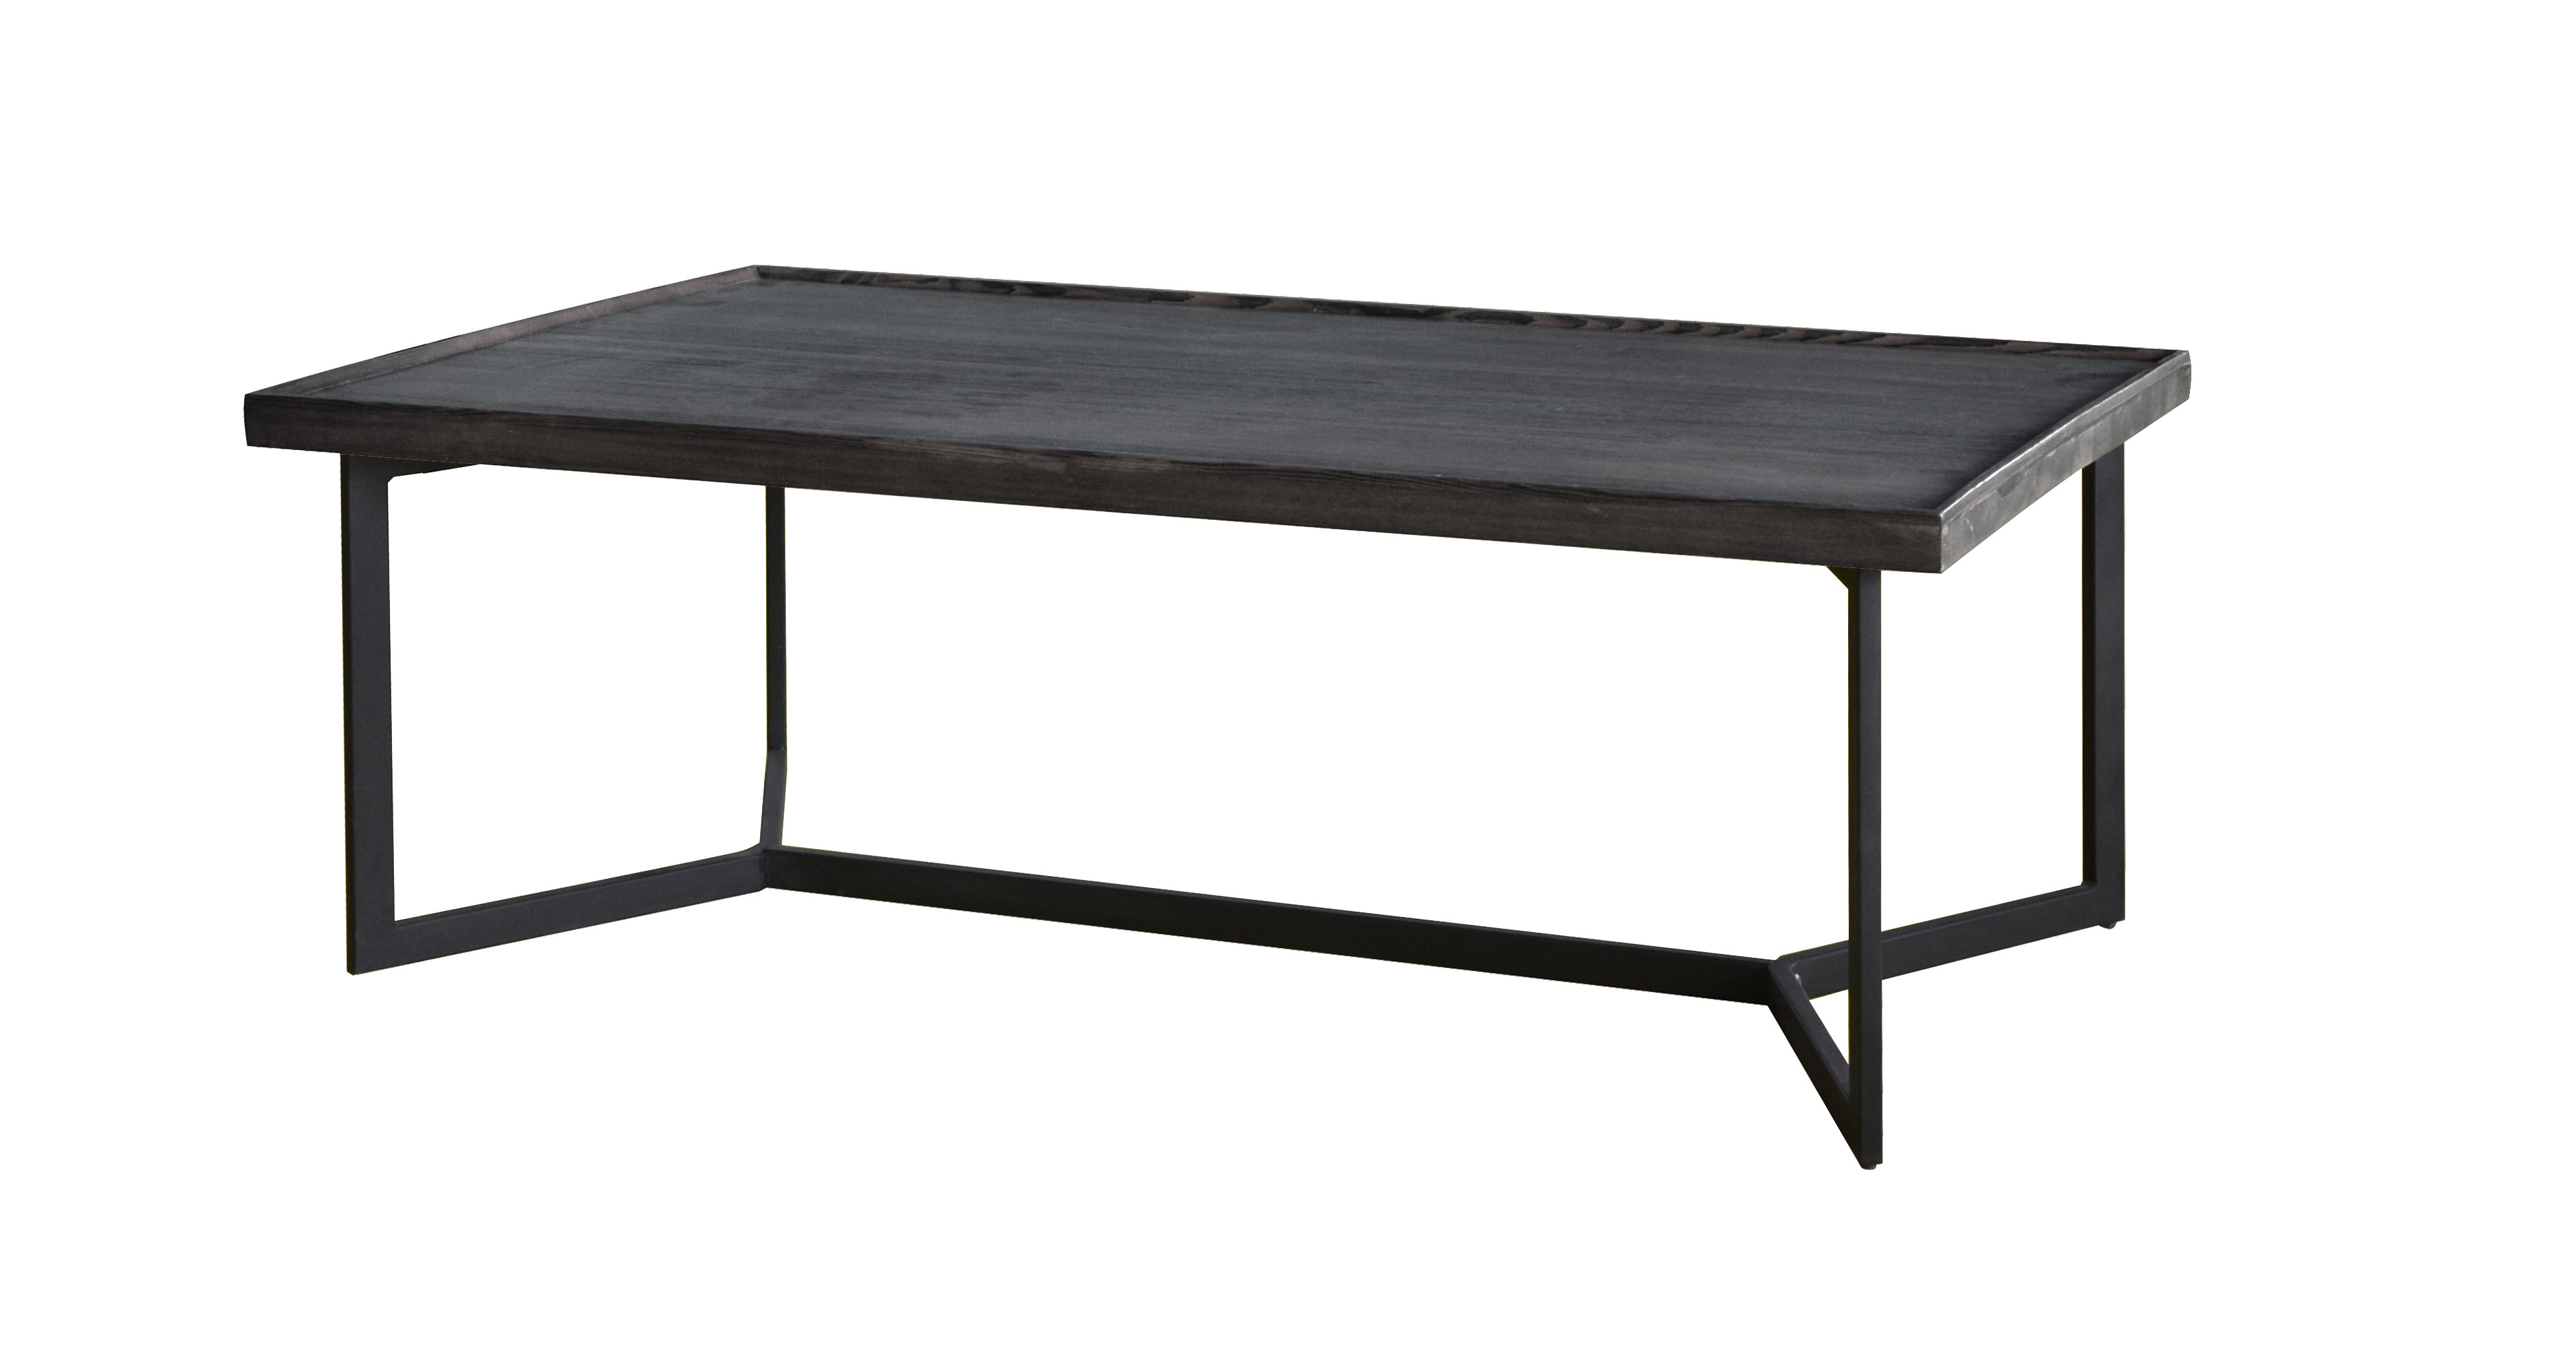 Madison Home Usa Modern Rustic Coffee Table Reviews Wayfair within sizing 3904 X 2060